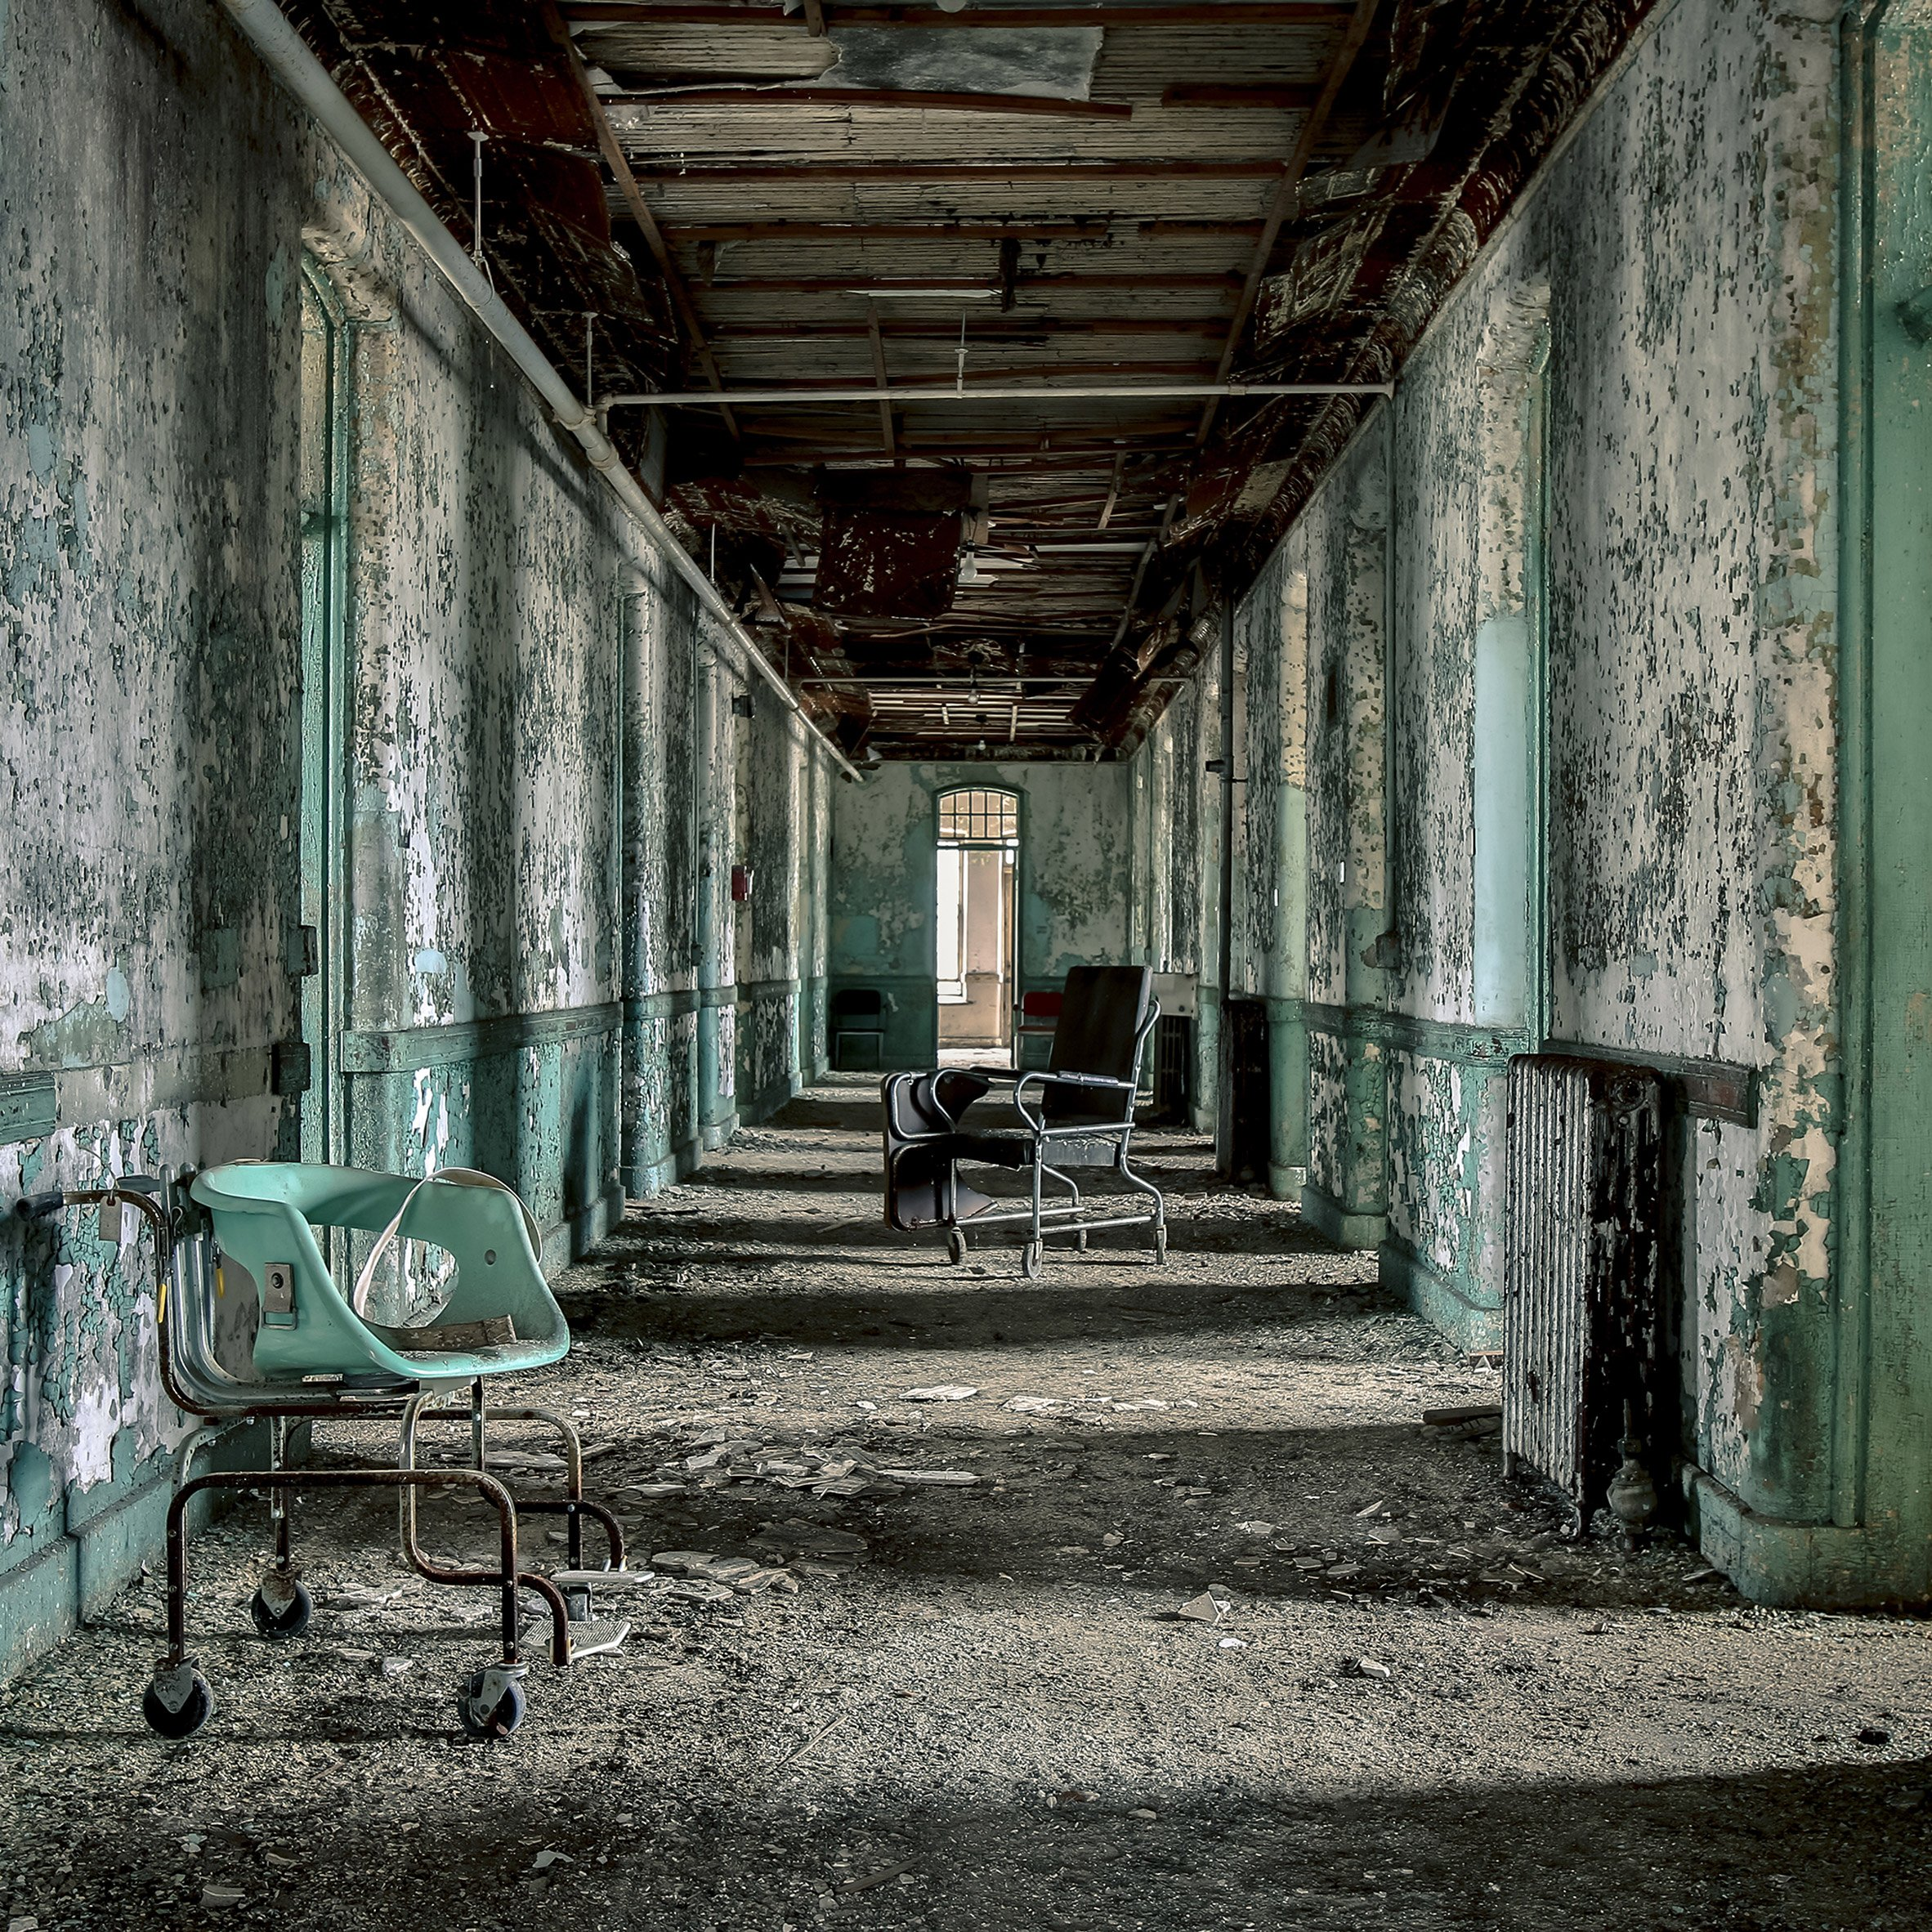 photography essays dezeen matt van der velde photographs abandoned insane asylums